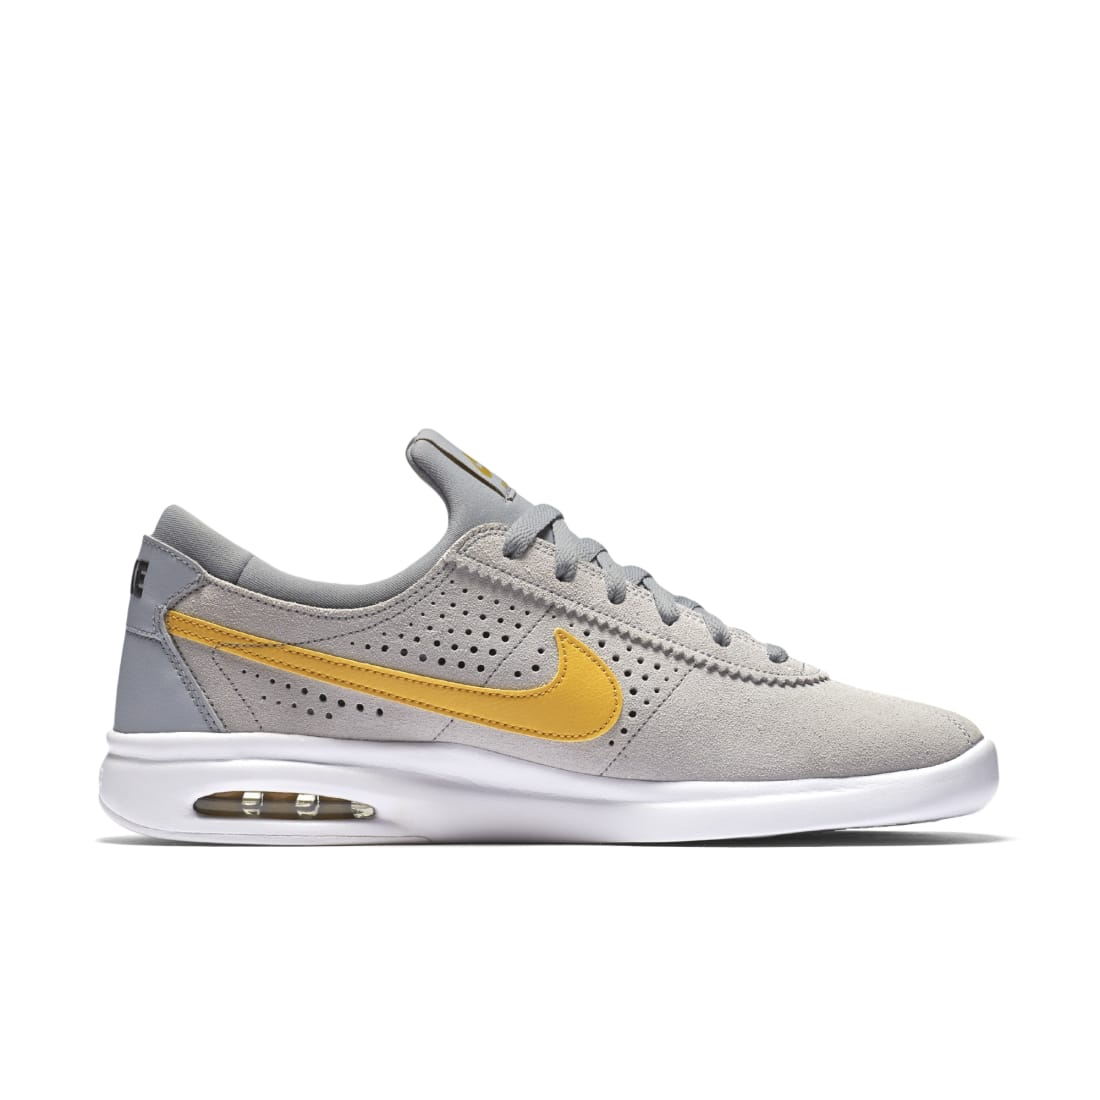 Nike Bruin Wolf Grey Mineral Gold